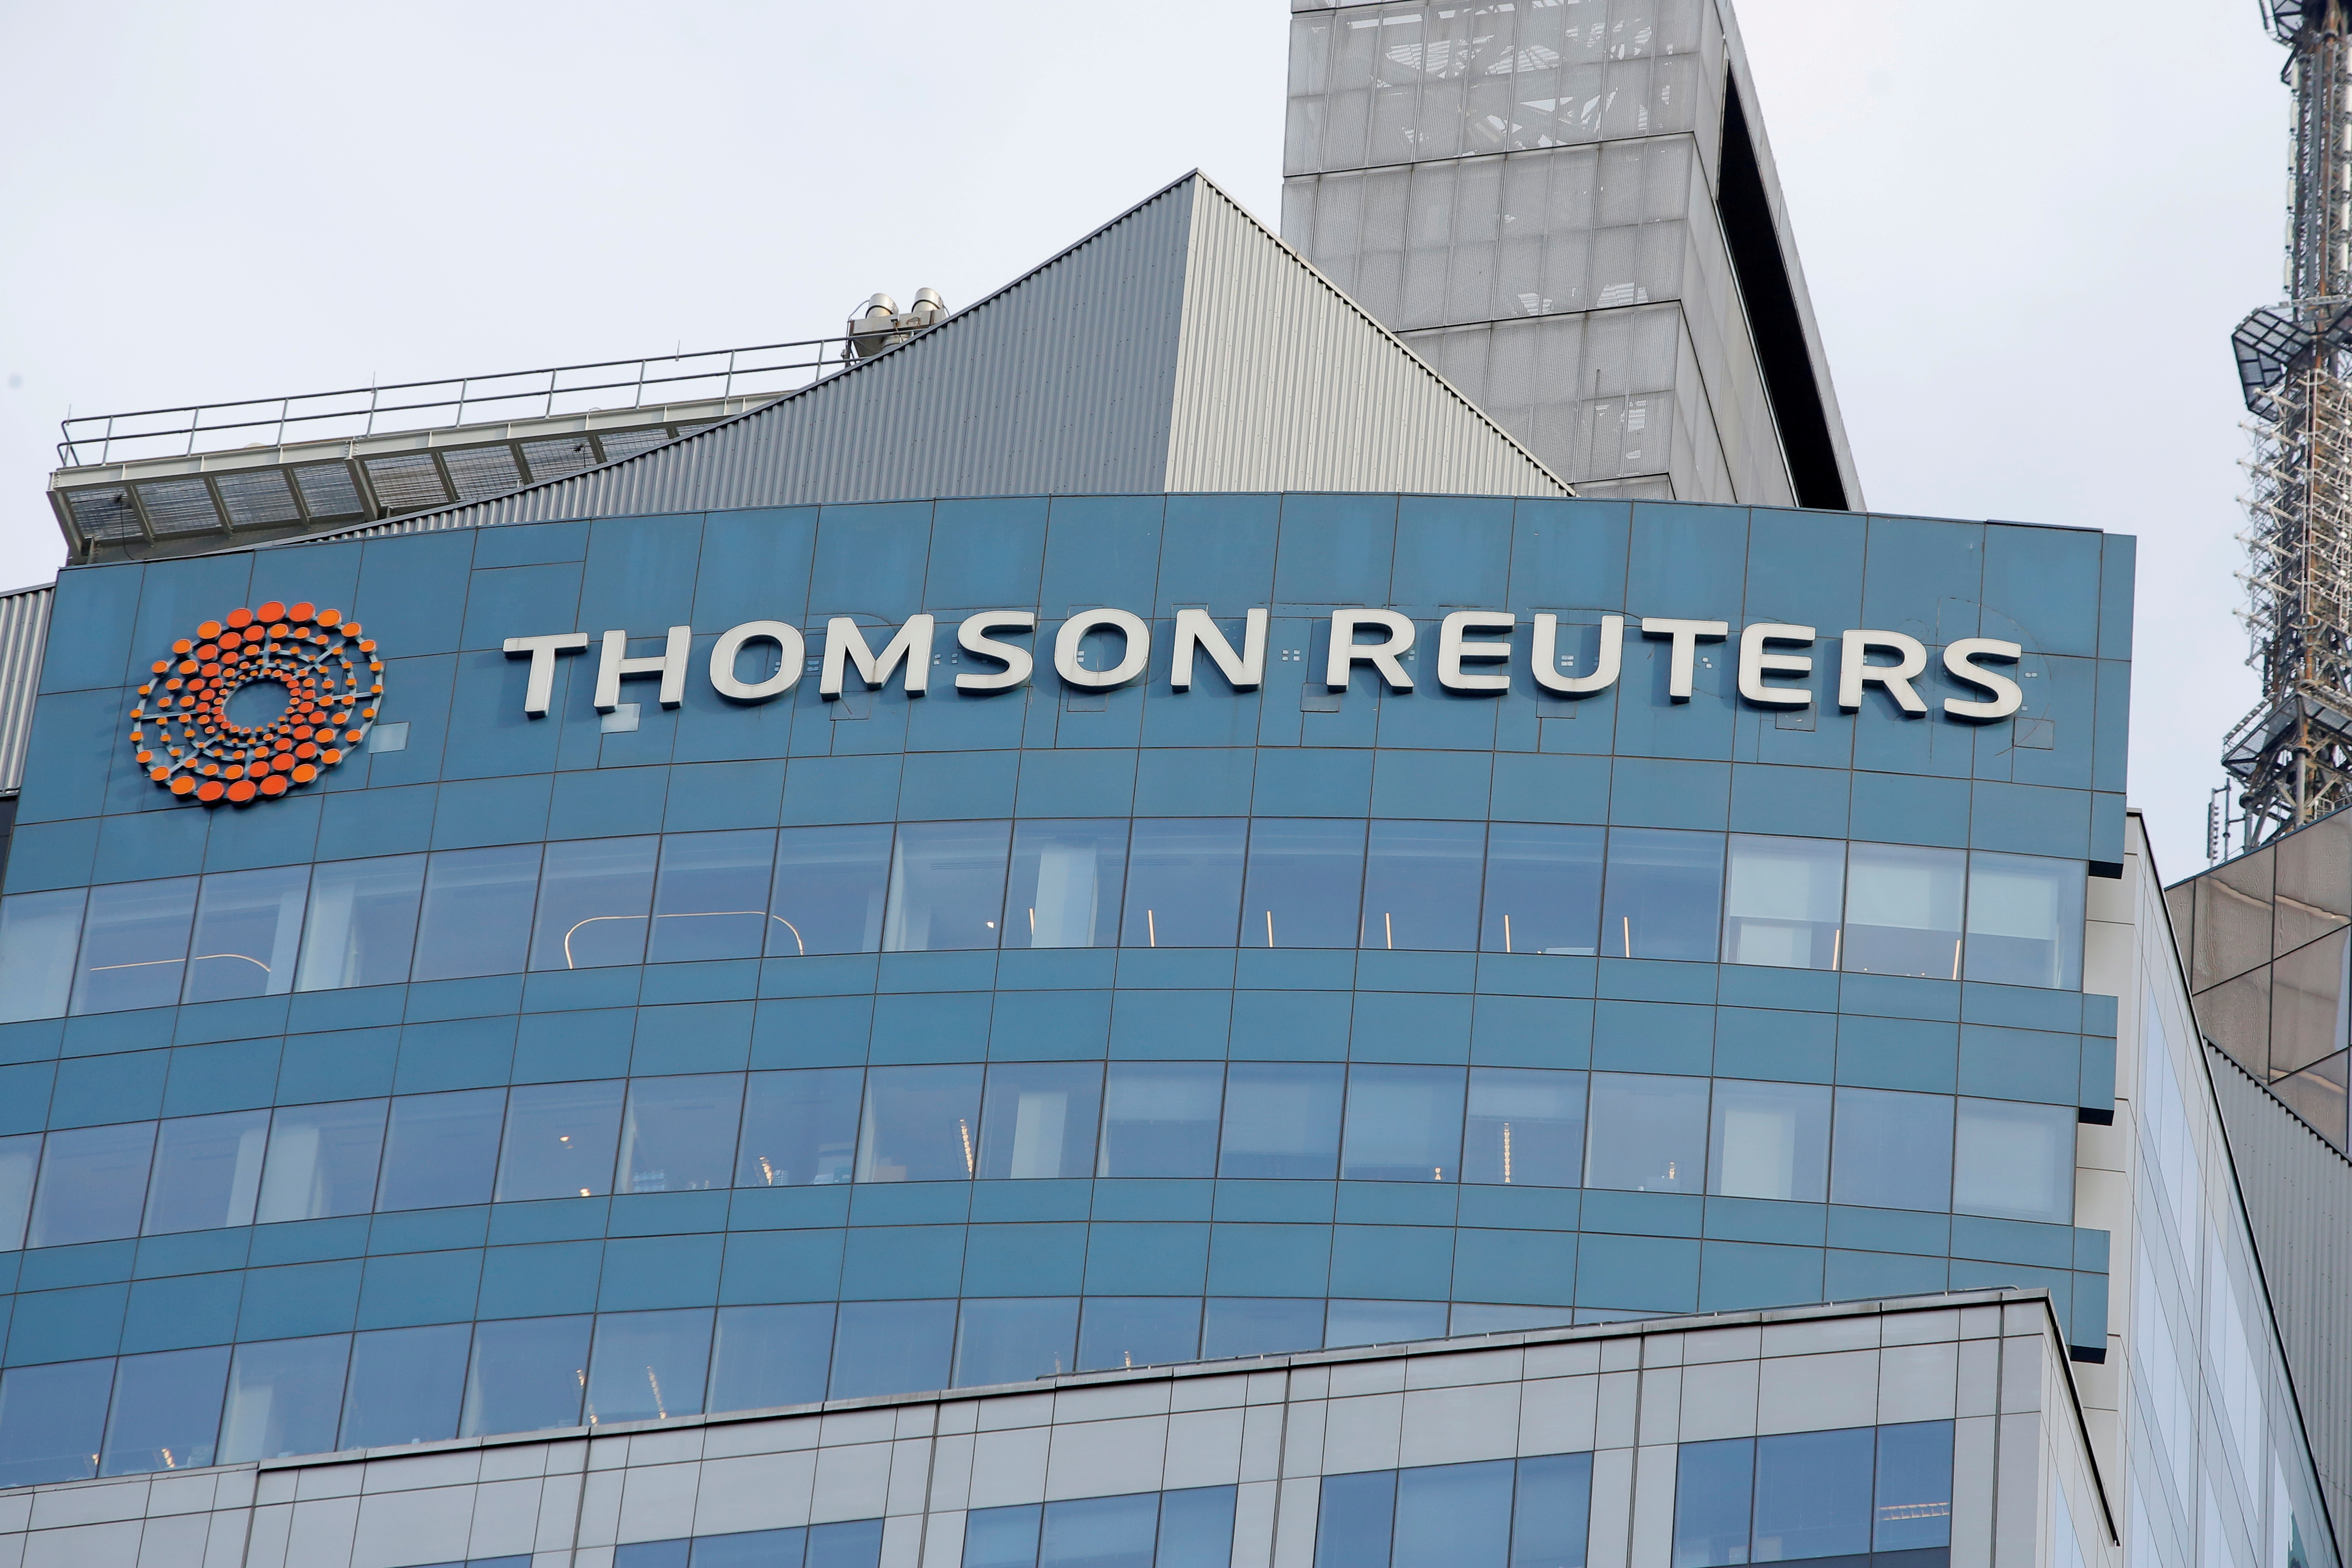 The Thomson Reuters logo is seen on the company building in Times Square, New York, U.S., January 30, 2018. REUTERS/Andrew Kelly//File Photo